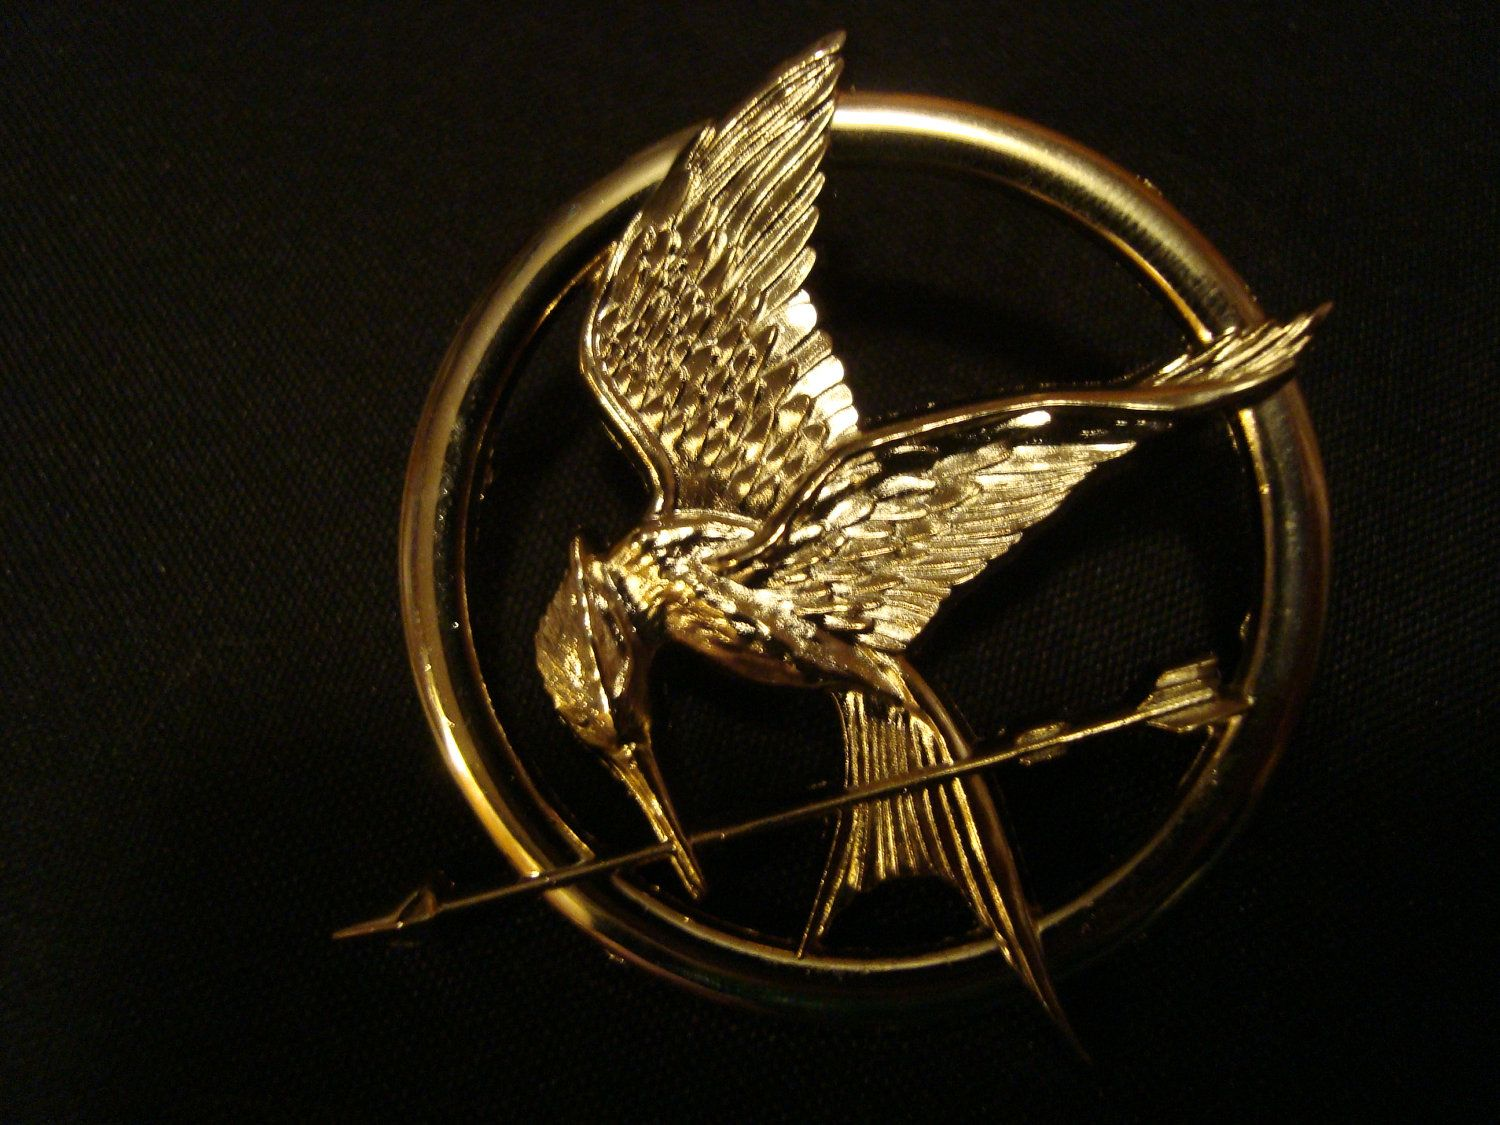 Small katniss everdeen mockingjay hunger games brooch pin 1900 hunger games gold and bronze toned katniss mockingjay pin brooch replica prop buycottarizona Gallery